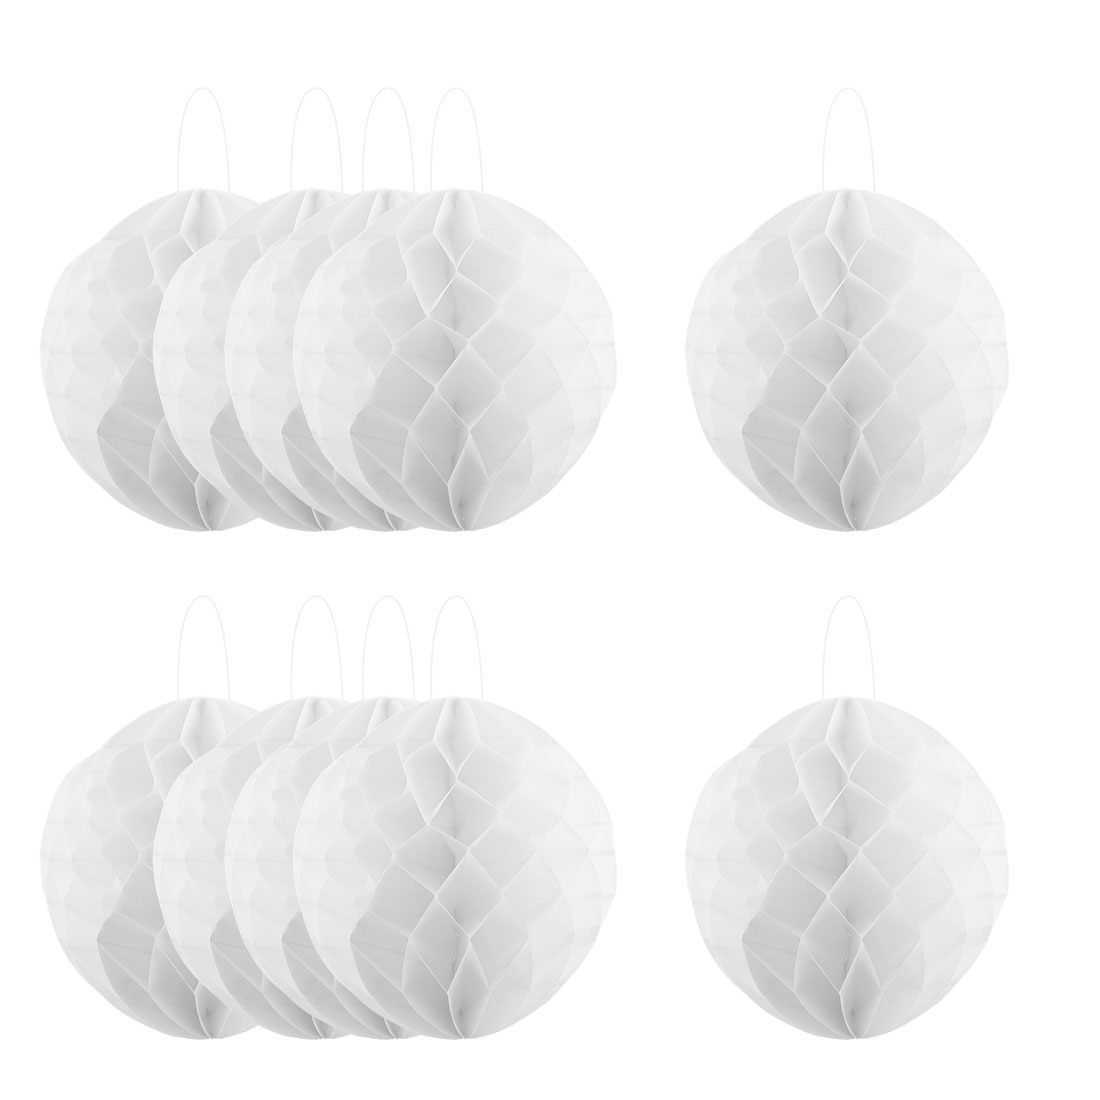 Household Party Paper Wall Window Door DIY Decoration Honeycomb Ball White 12 Inch Dia 10 Pcs